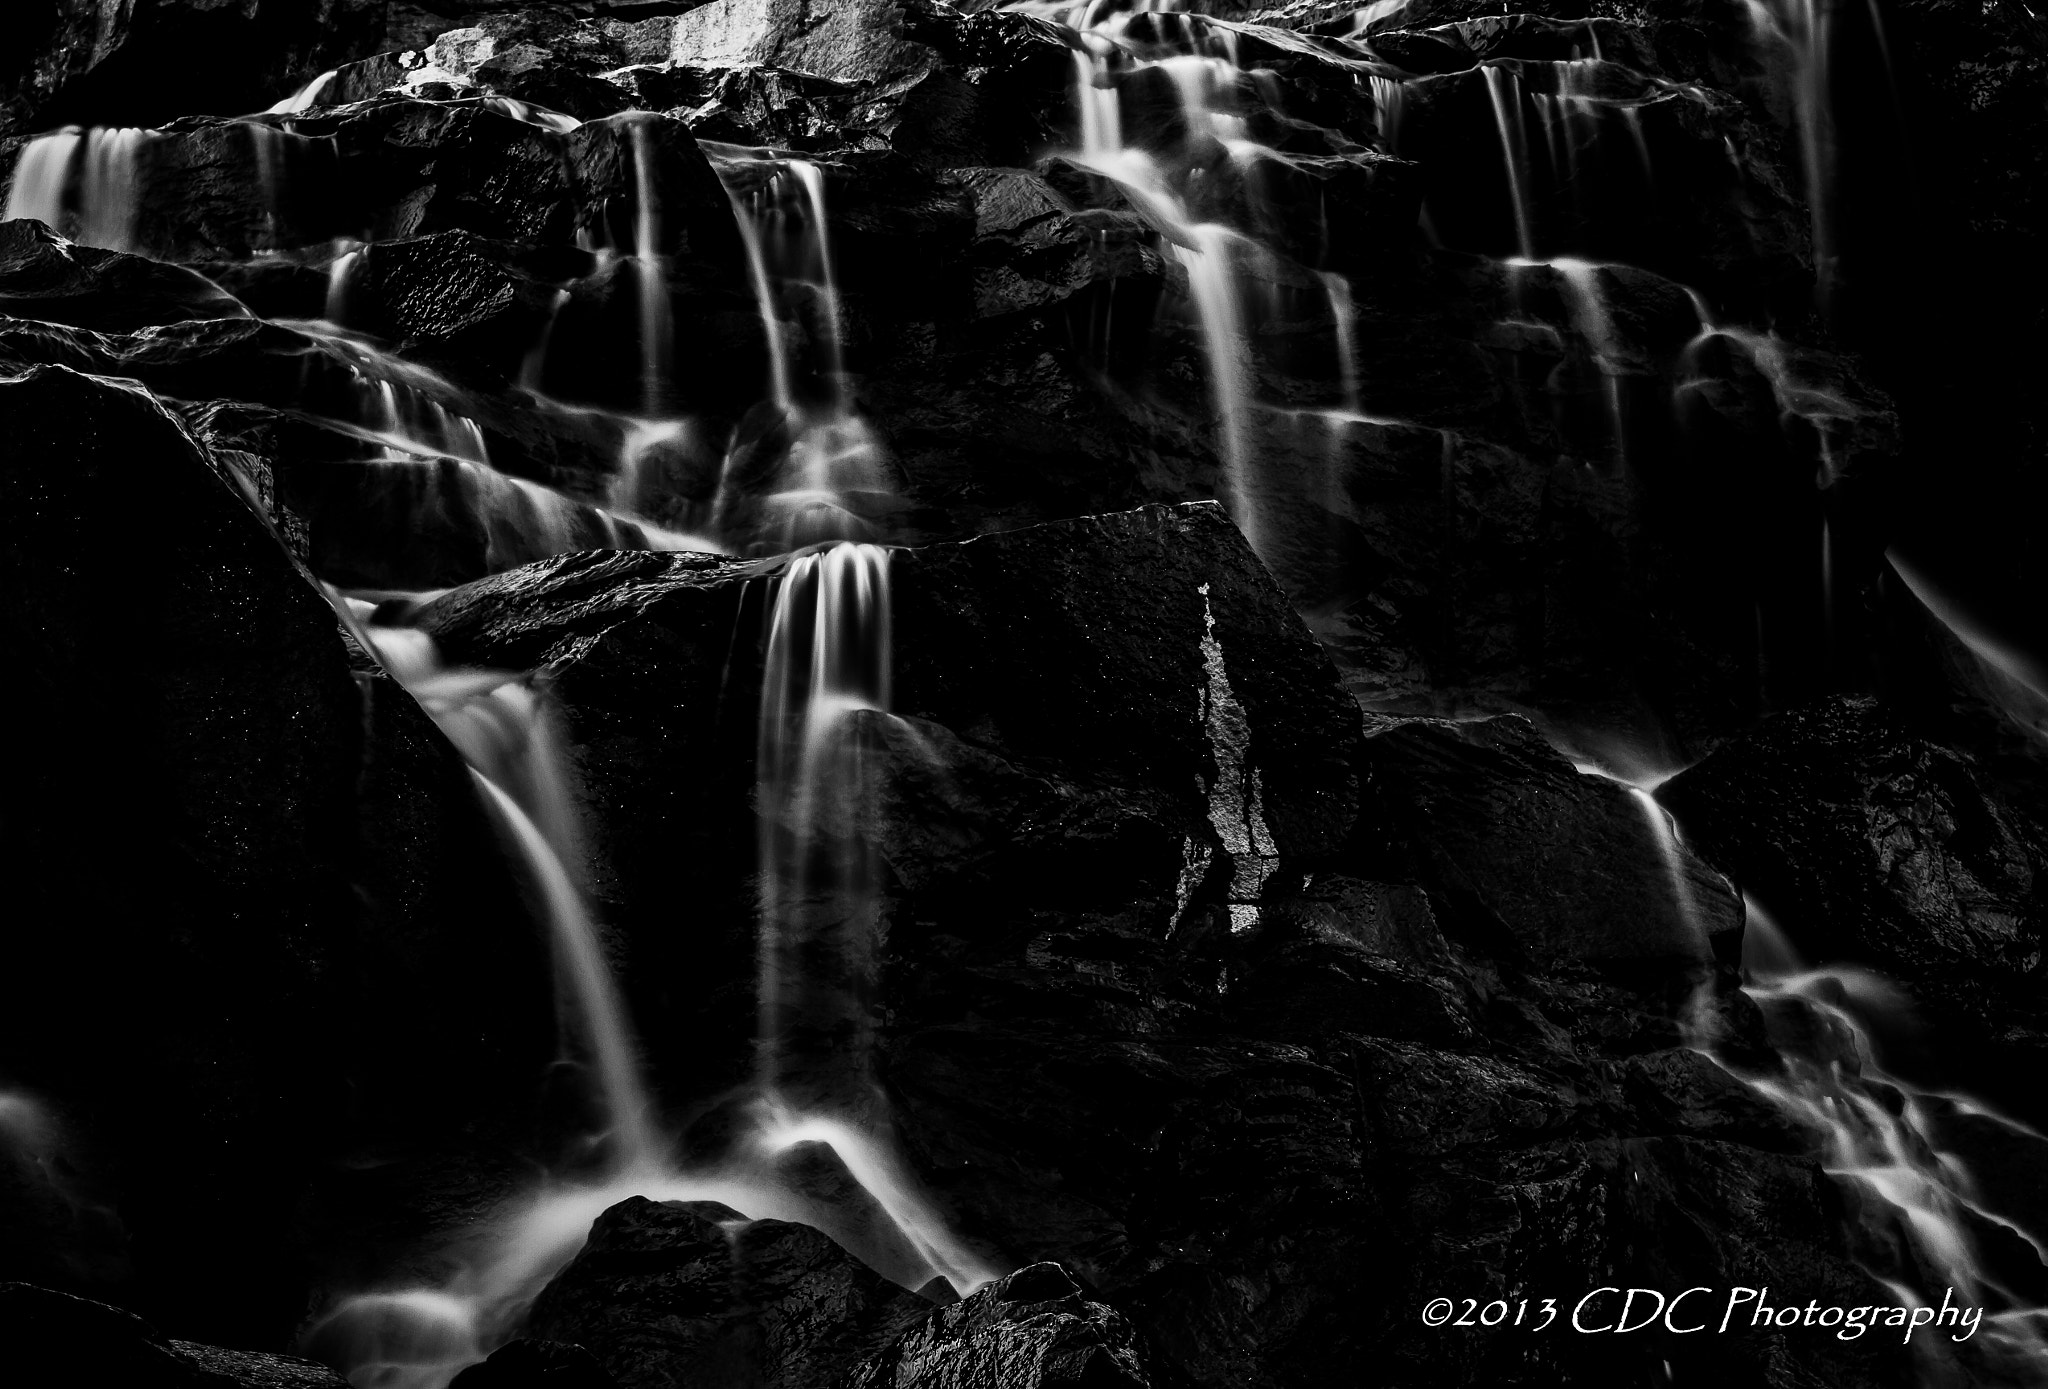 Photograph Dark Cascades by CDC Photography on 500px